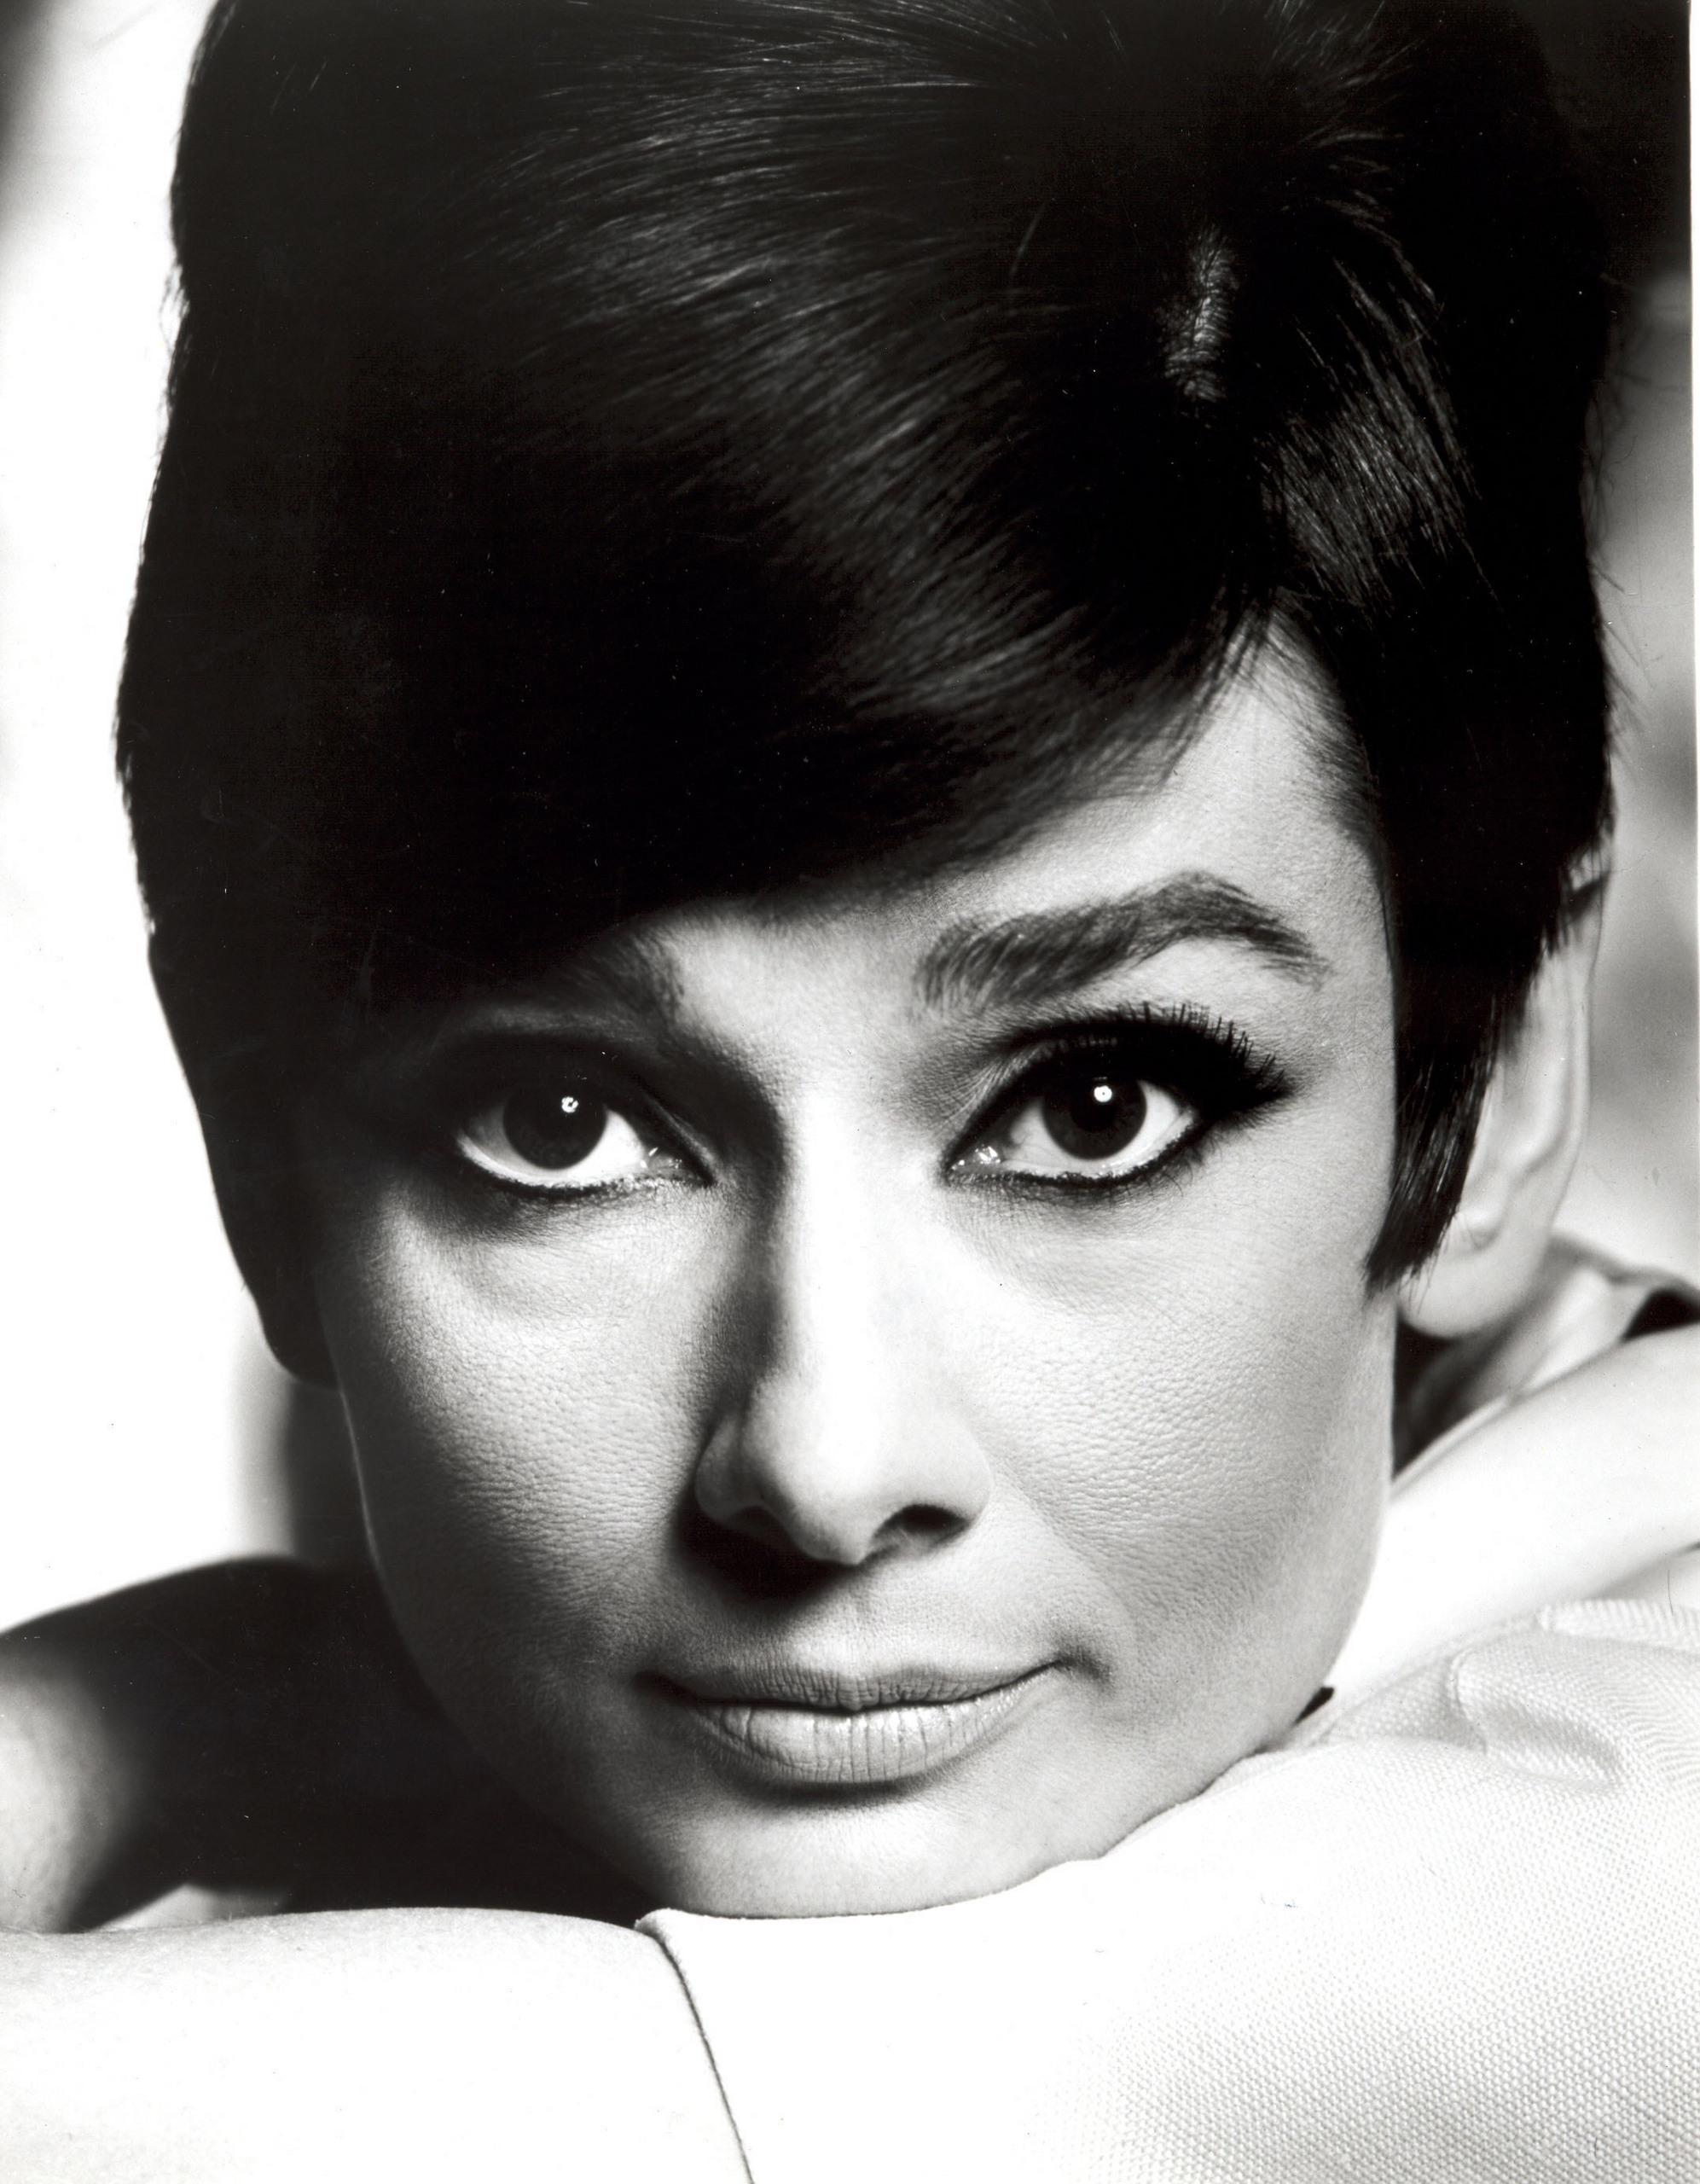 audrey hepburn audrey hepburn photo 21766902 fanpop. Black Bedroom Furniture Sets. Home Design Ideas